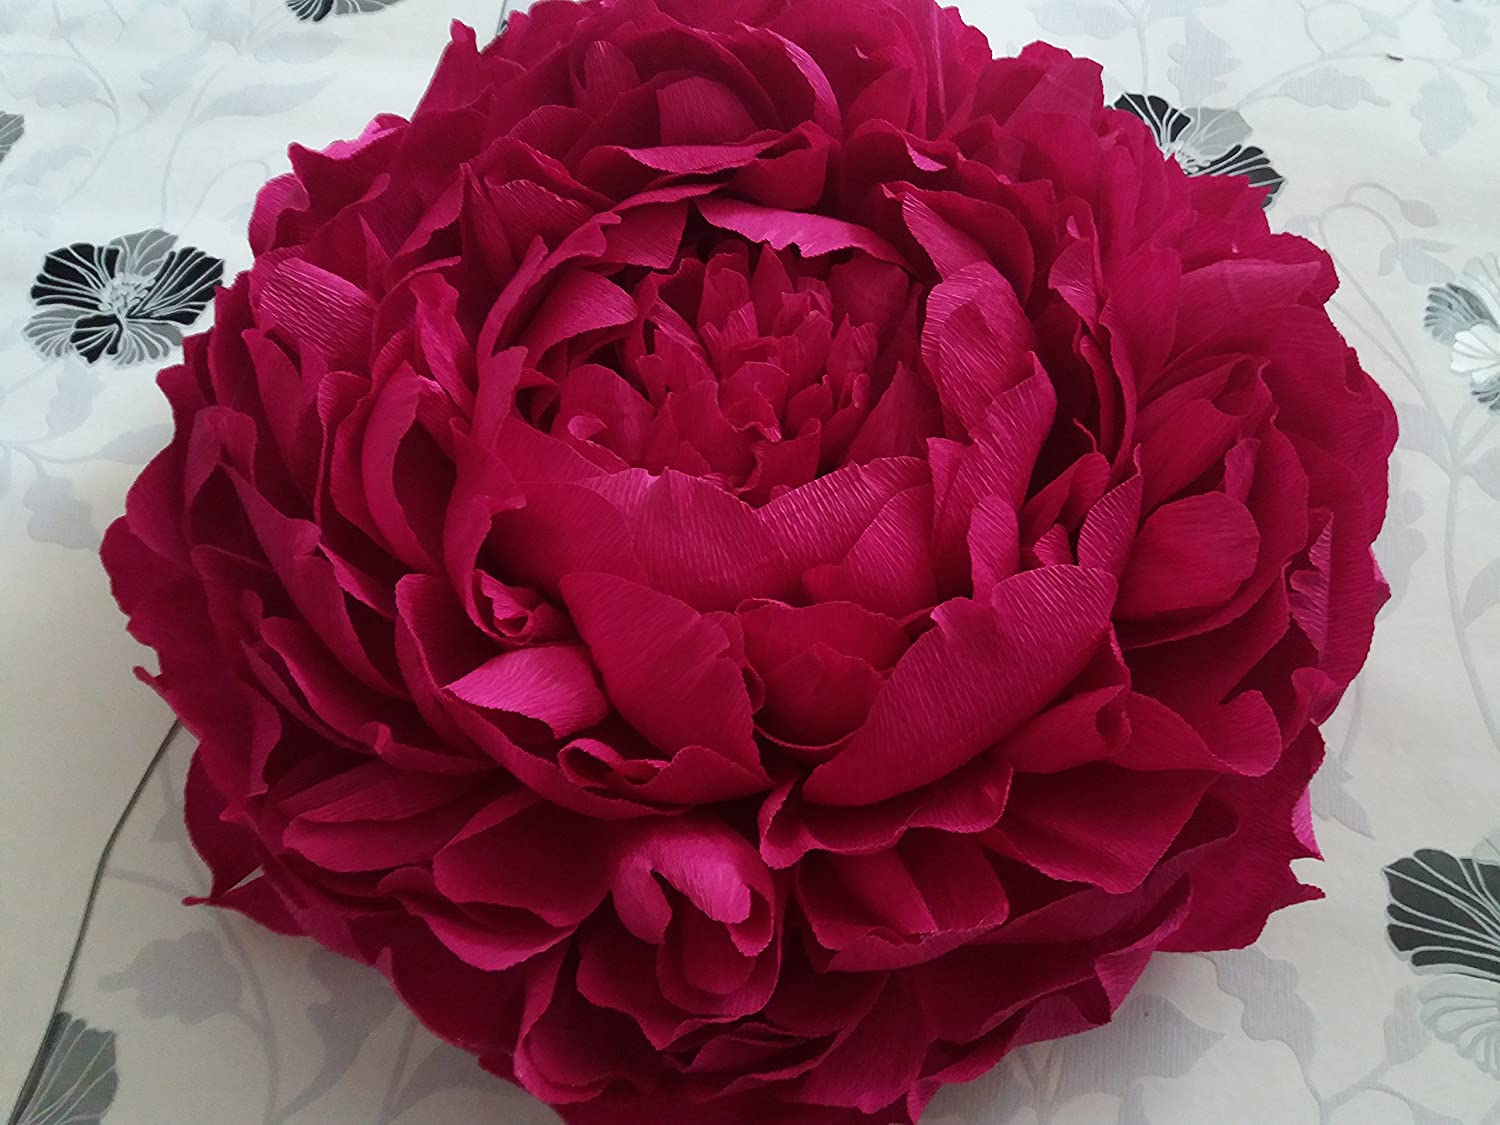 Giant Crepe Paper Peony Large Crepe Paper Flowers Home Decor Wall